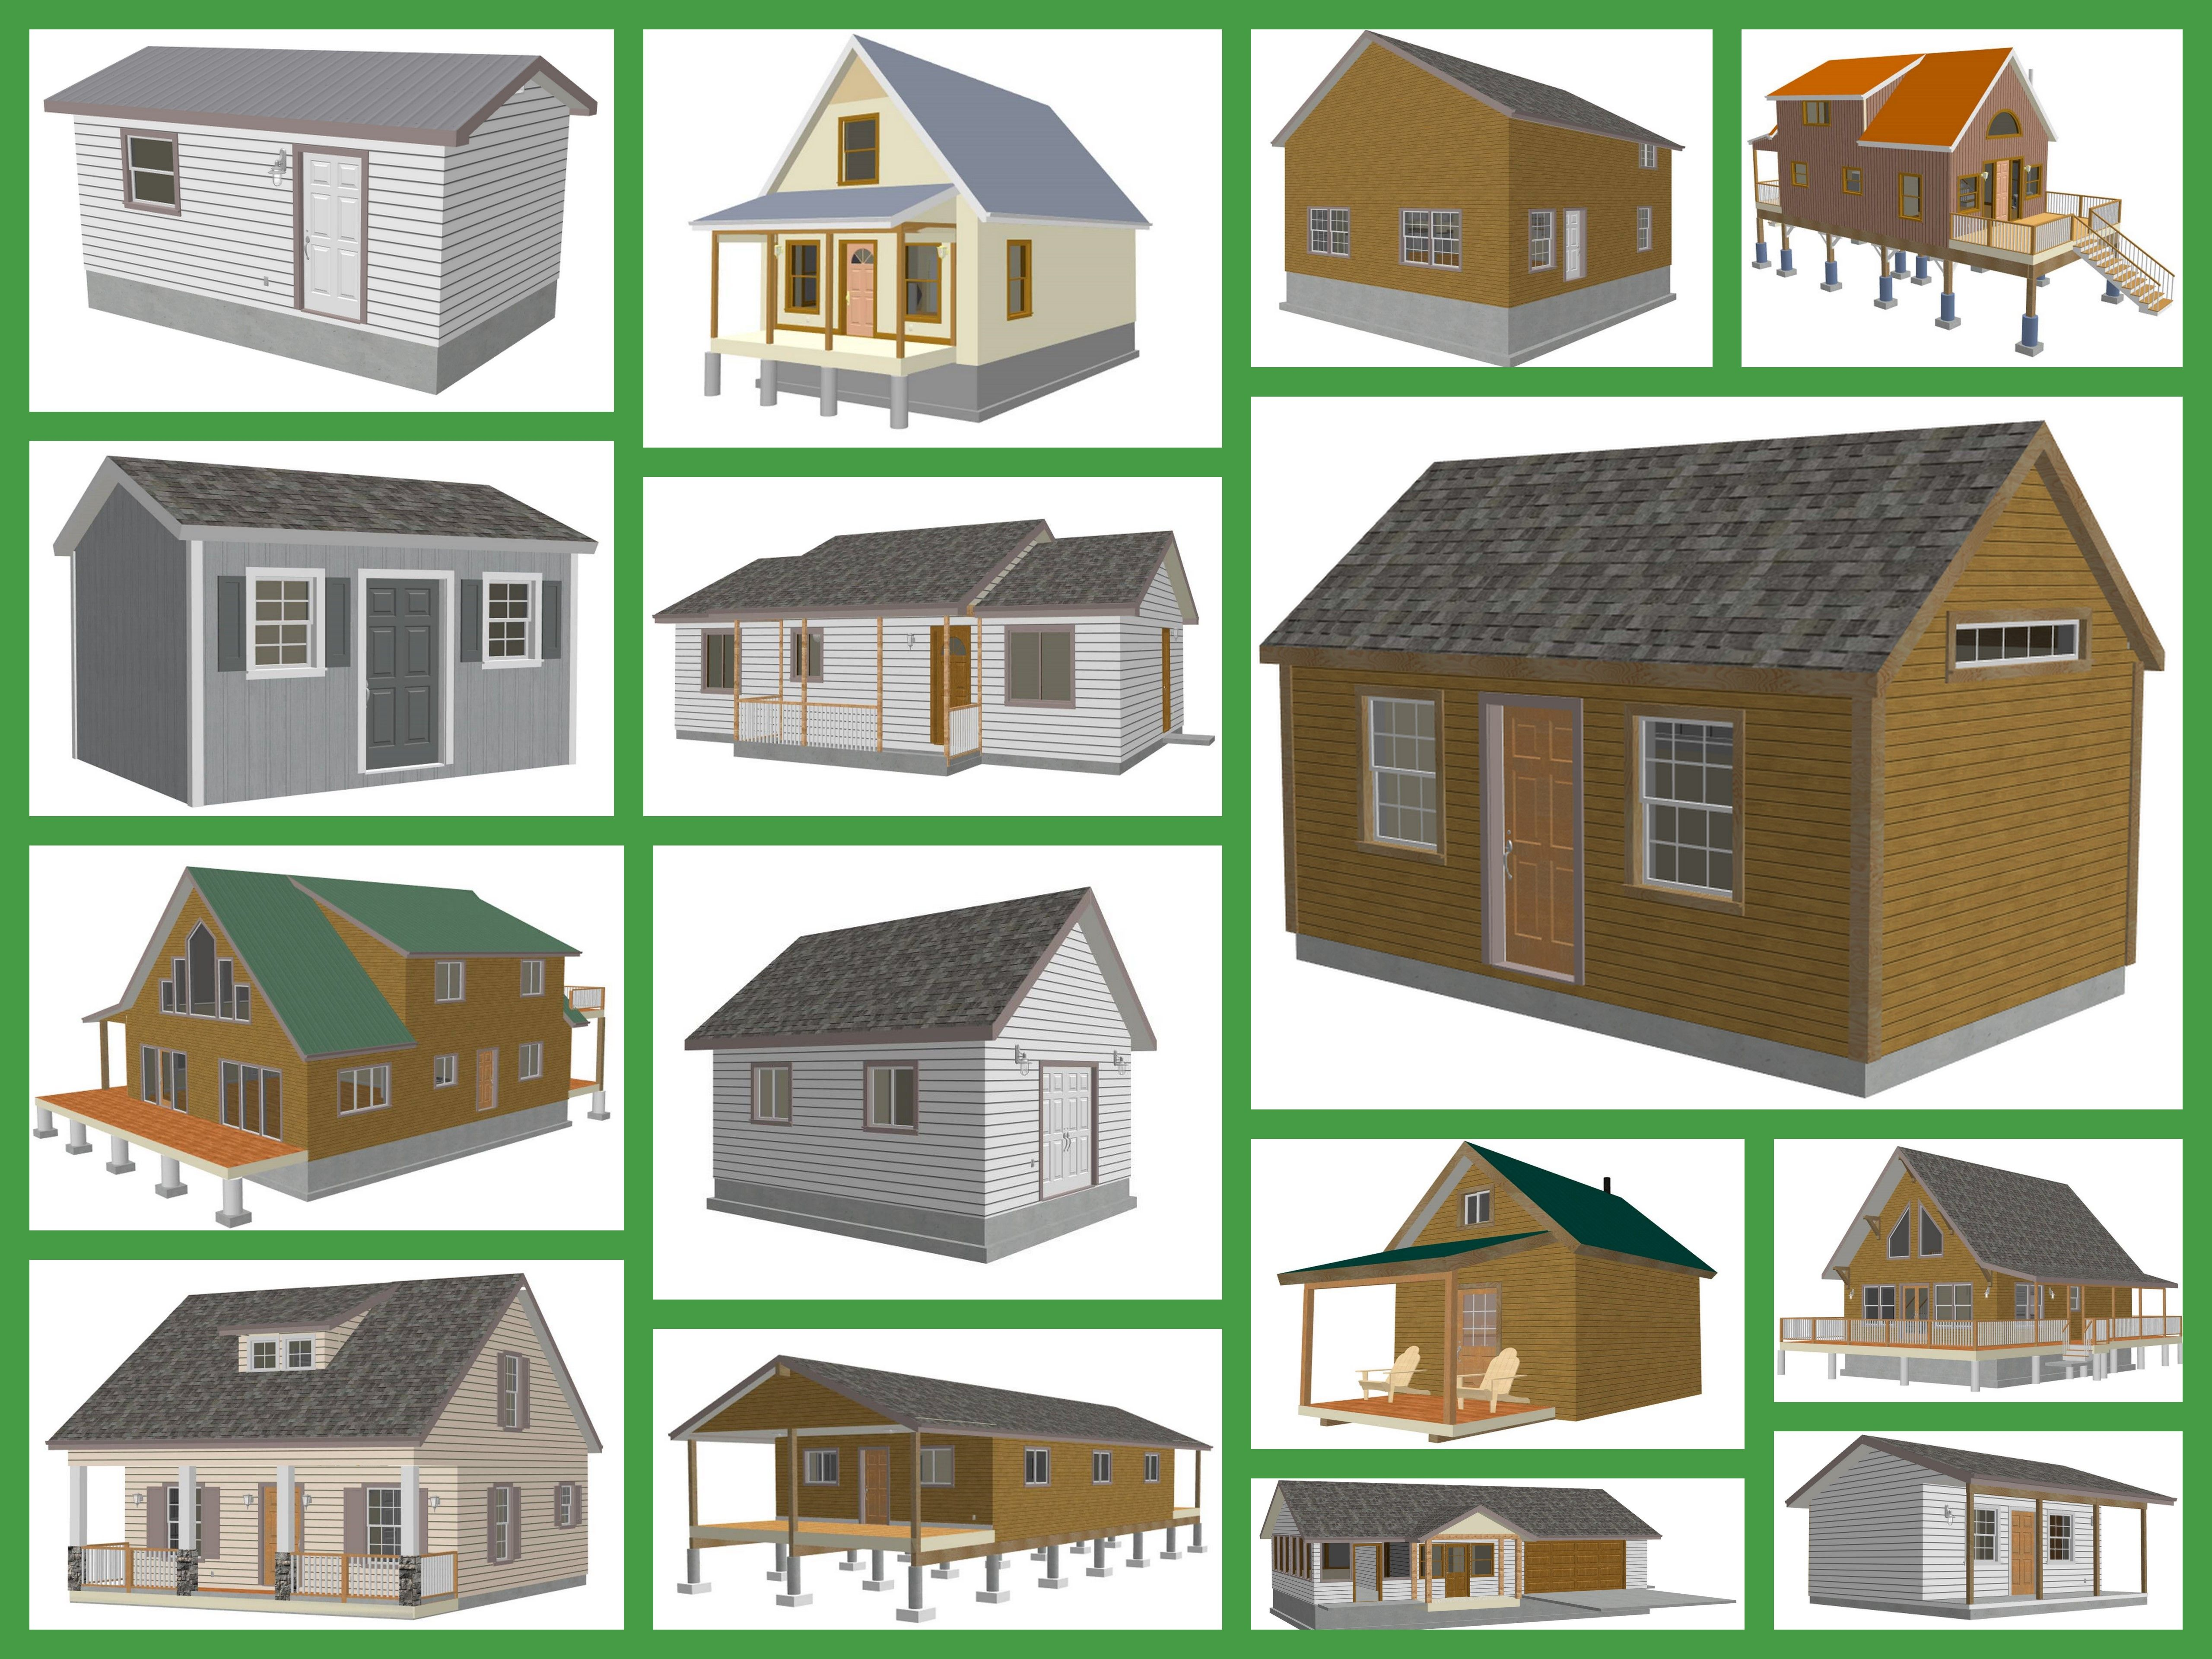 Bunkhouse Plans And Small Cabin Plans Small Shed Plans Shed Plans Storage Shed Plans